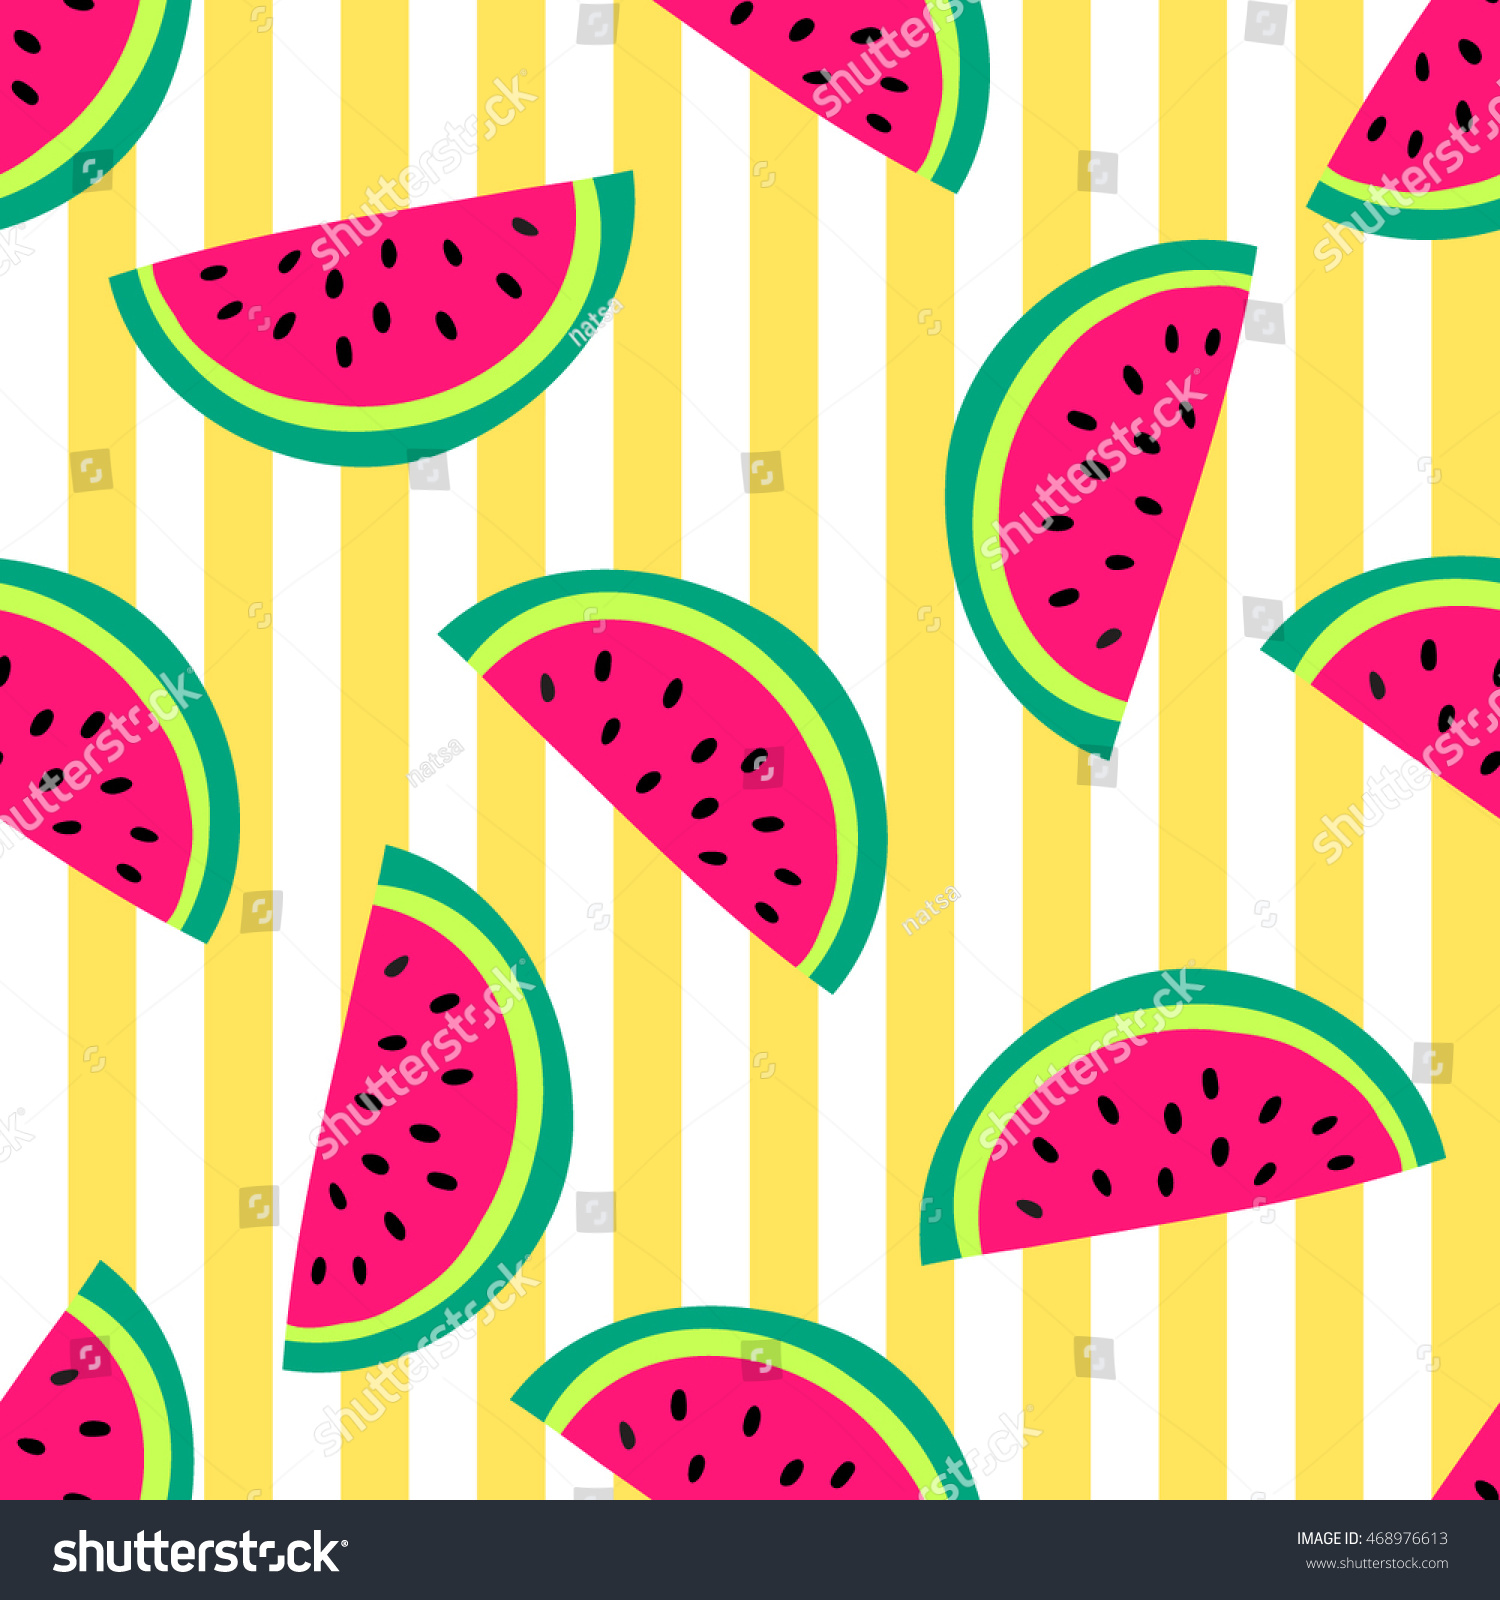 Download Wallpaper 1920x1080 Watermelon, Yellow watermelon ...